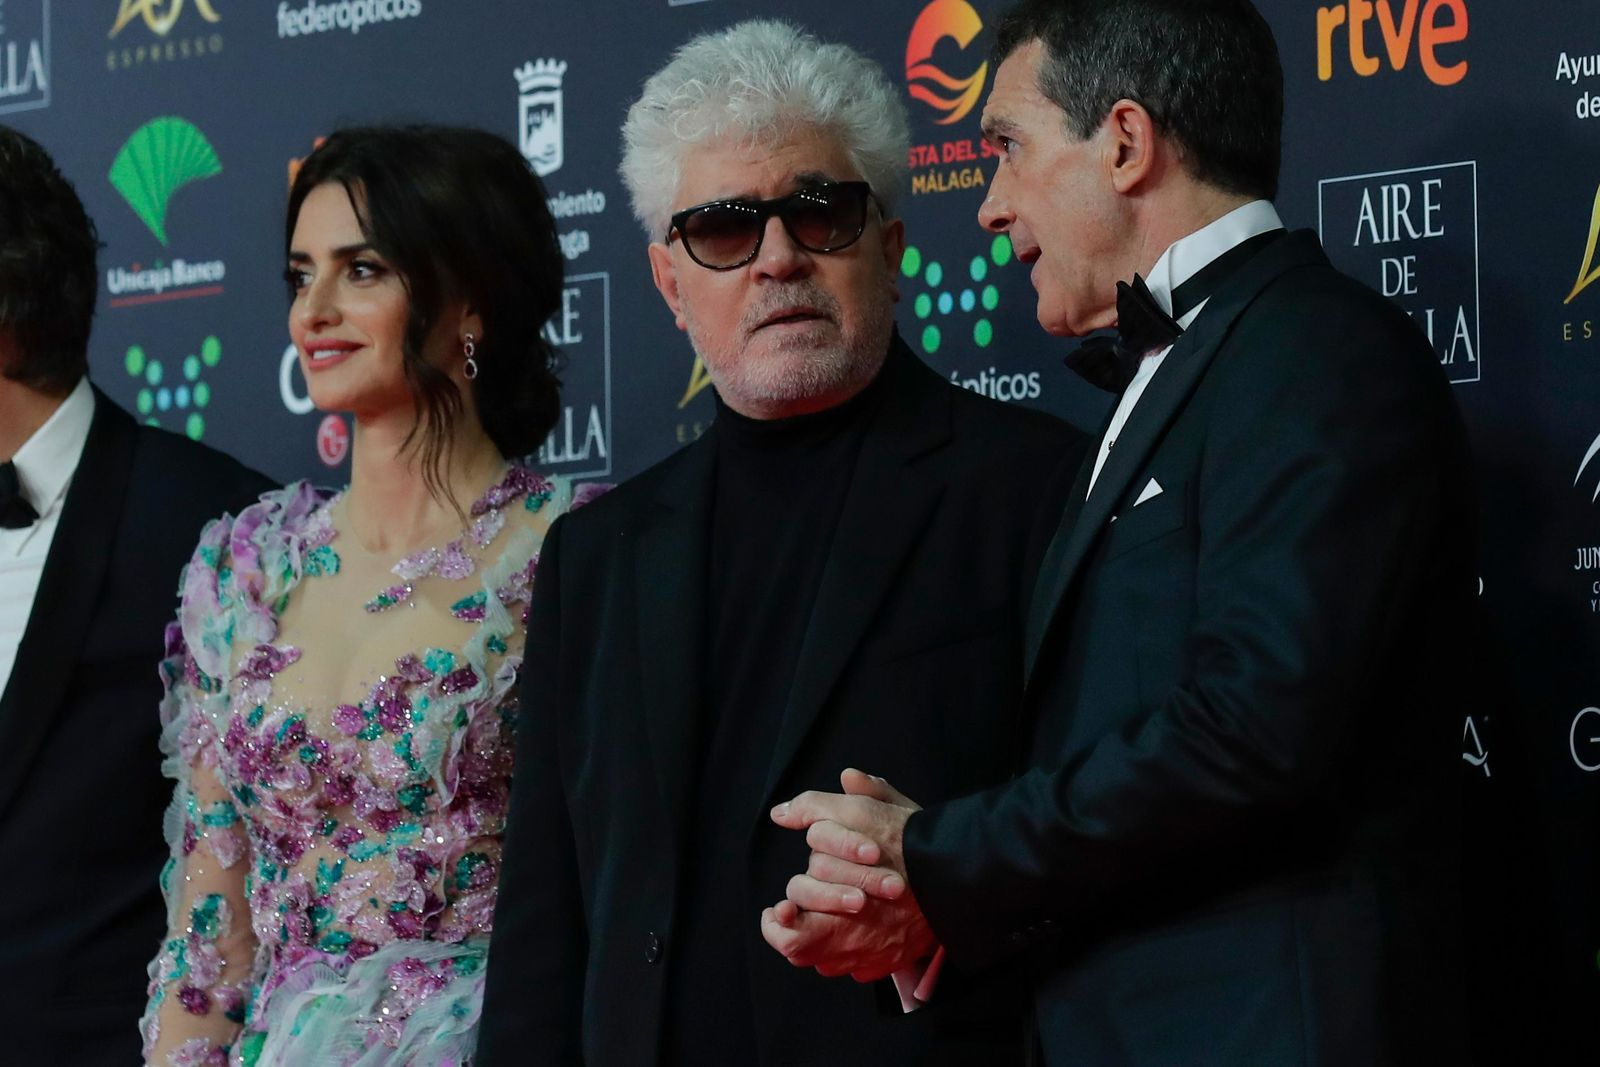 Spanish actor Antonio Banderas, Spanish film director Pedro Almodovar and Spanish actress Penelope Cruz, from right, pose for photographers at the red carpet ahead the Goya Film Awards Ceremony in Malaga, southern Spain, Saturday, Jan. 25, 2020. The annual Goya Awards are Spain's main national film awards. (AP Photo/Manu Fernandez)